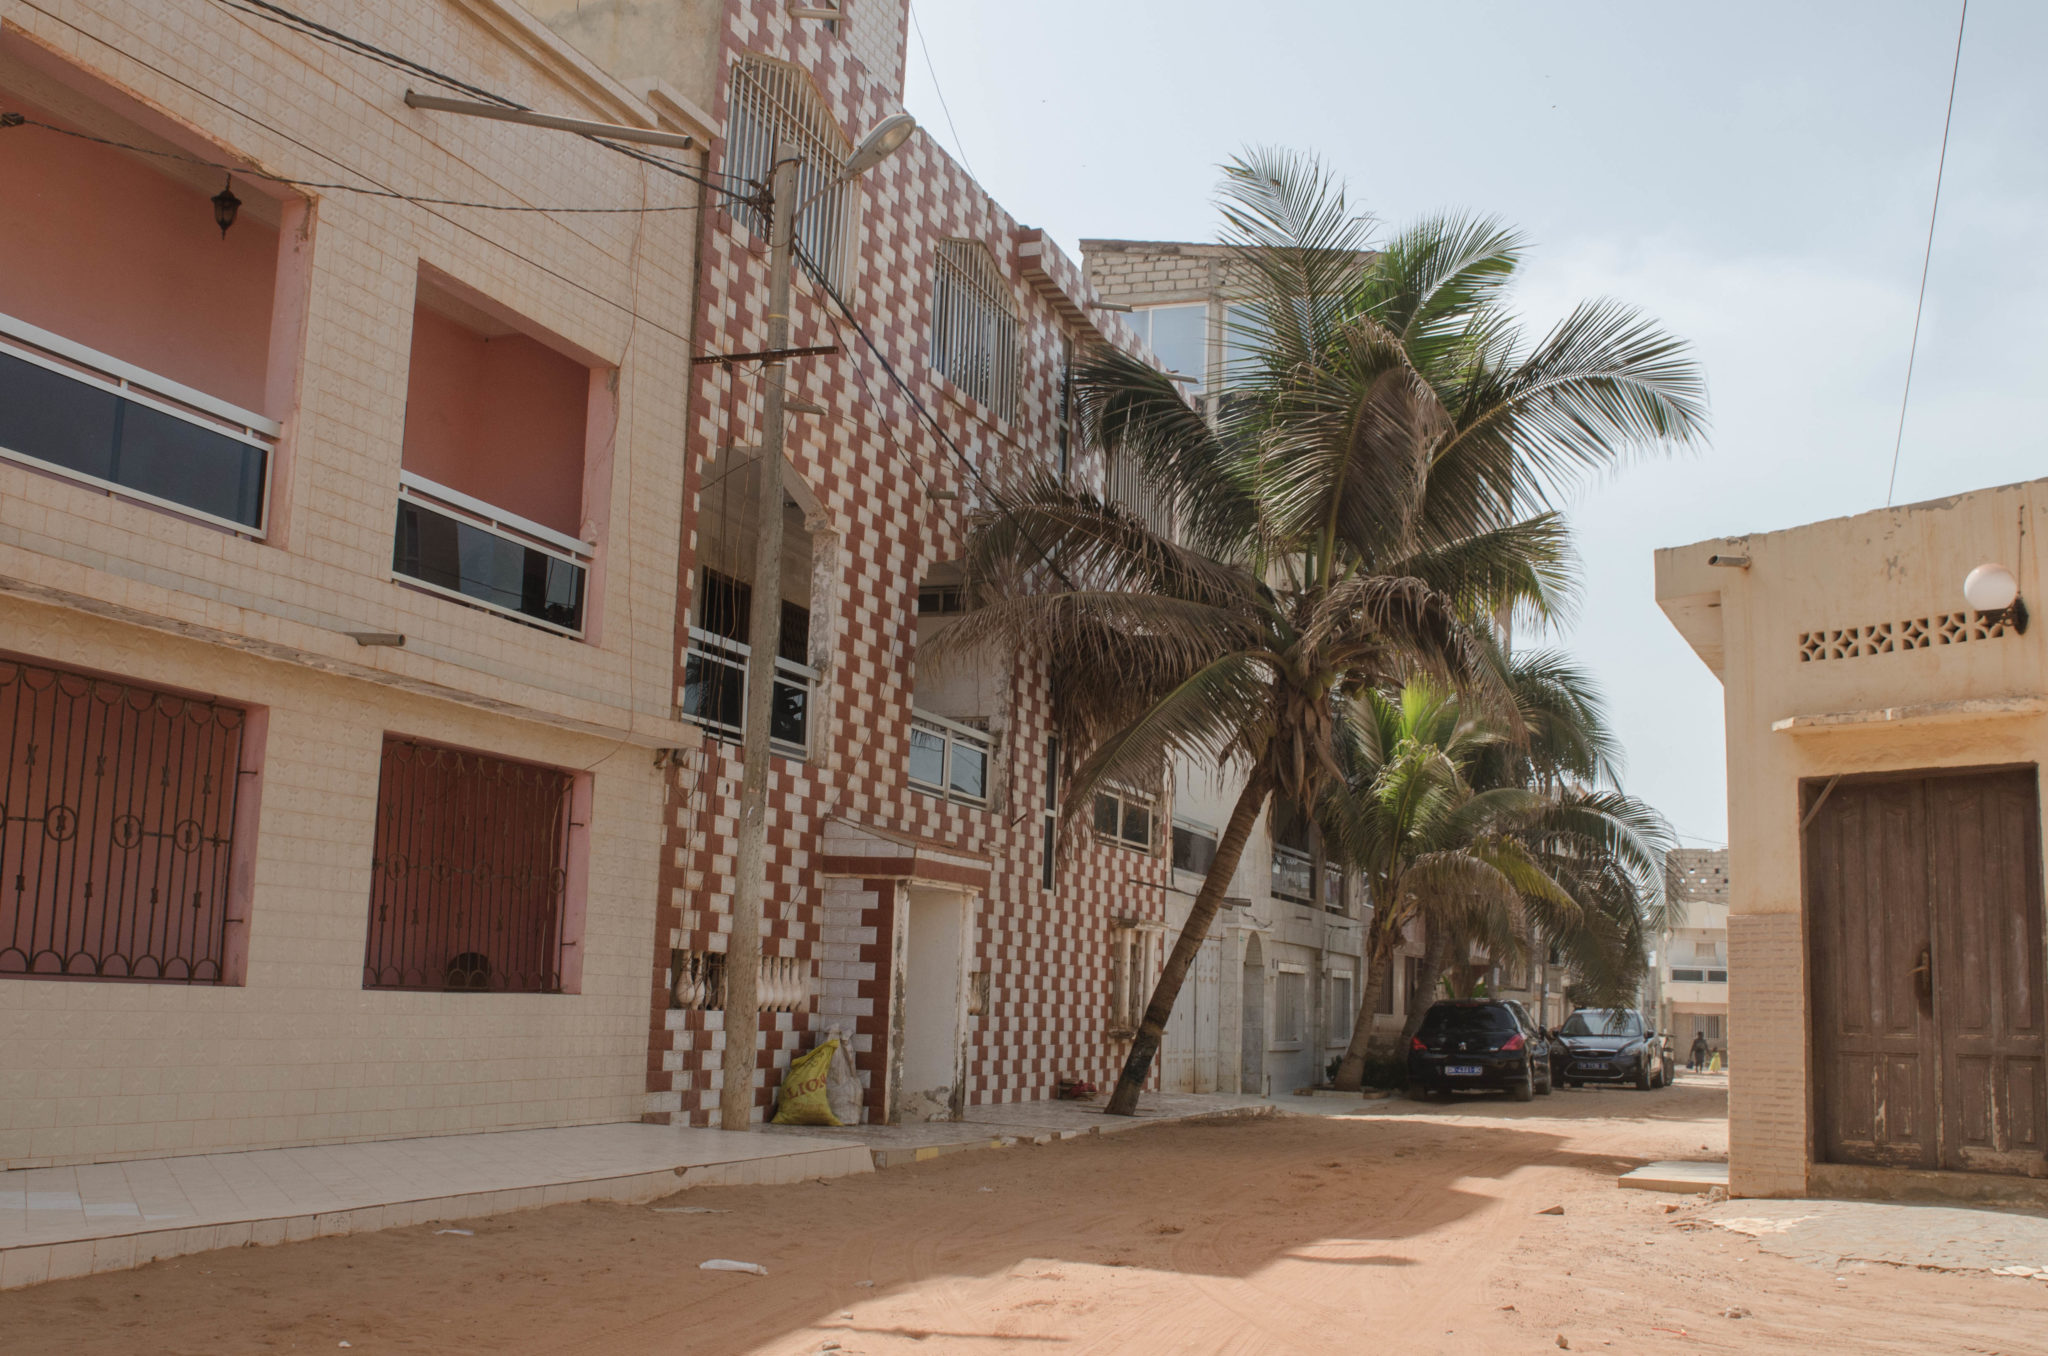 Senegal Travel Blog: Wander through little alleys and be surprised by the beautiful architecture surrounding you.